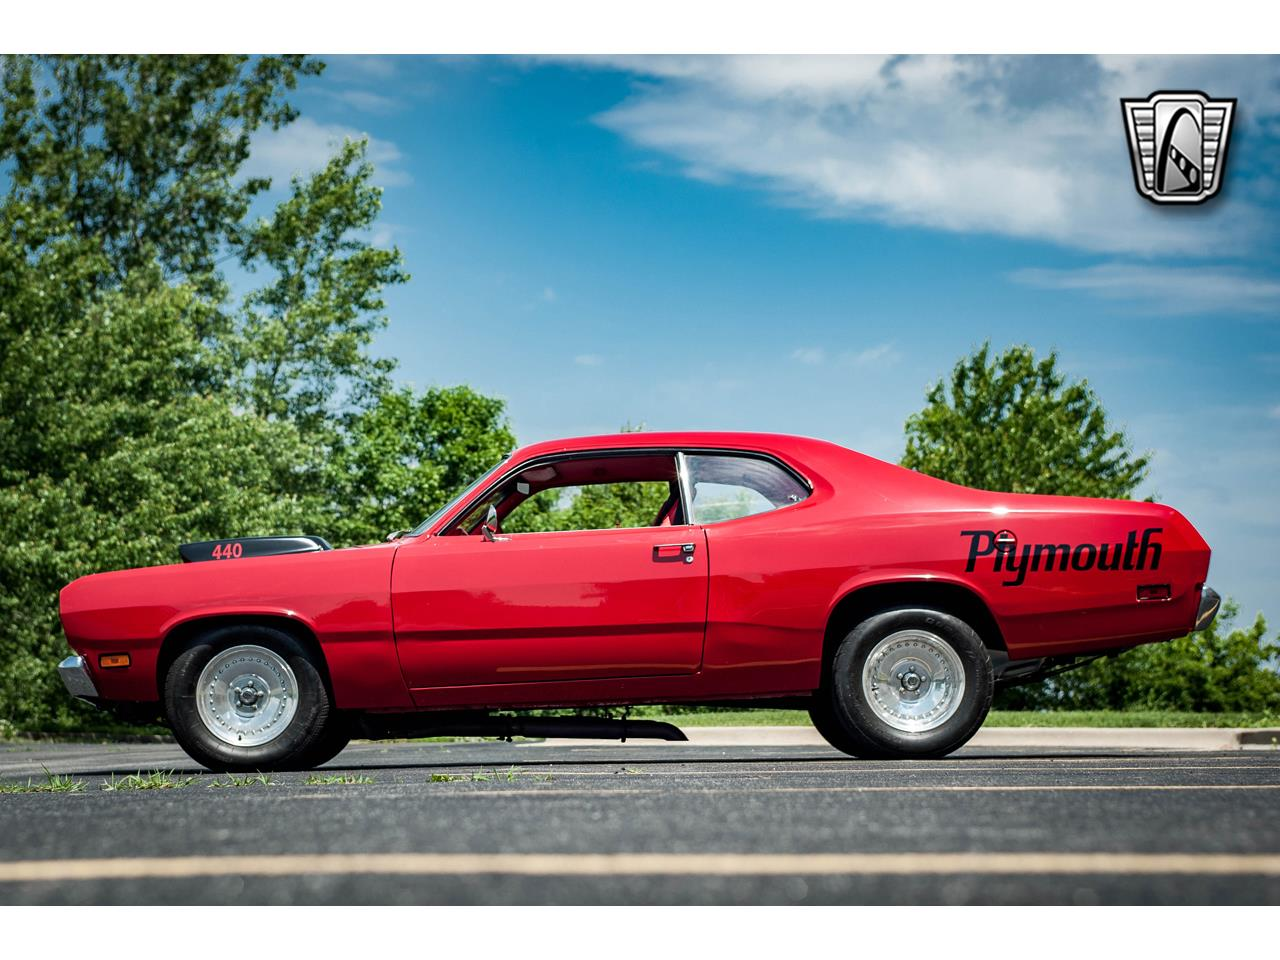 Large Picture of 1971 Duster located in O'Fallon Illinois - $30,000.00 Offered by Gateway Classic Cars - St. Louis - QB9U